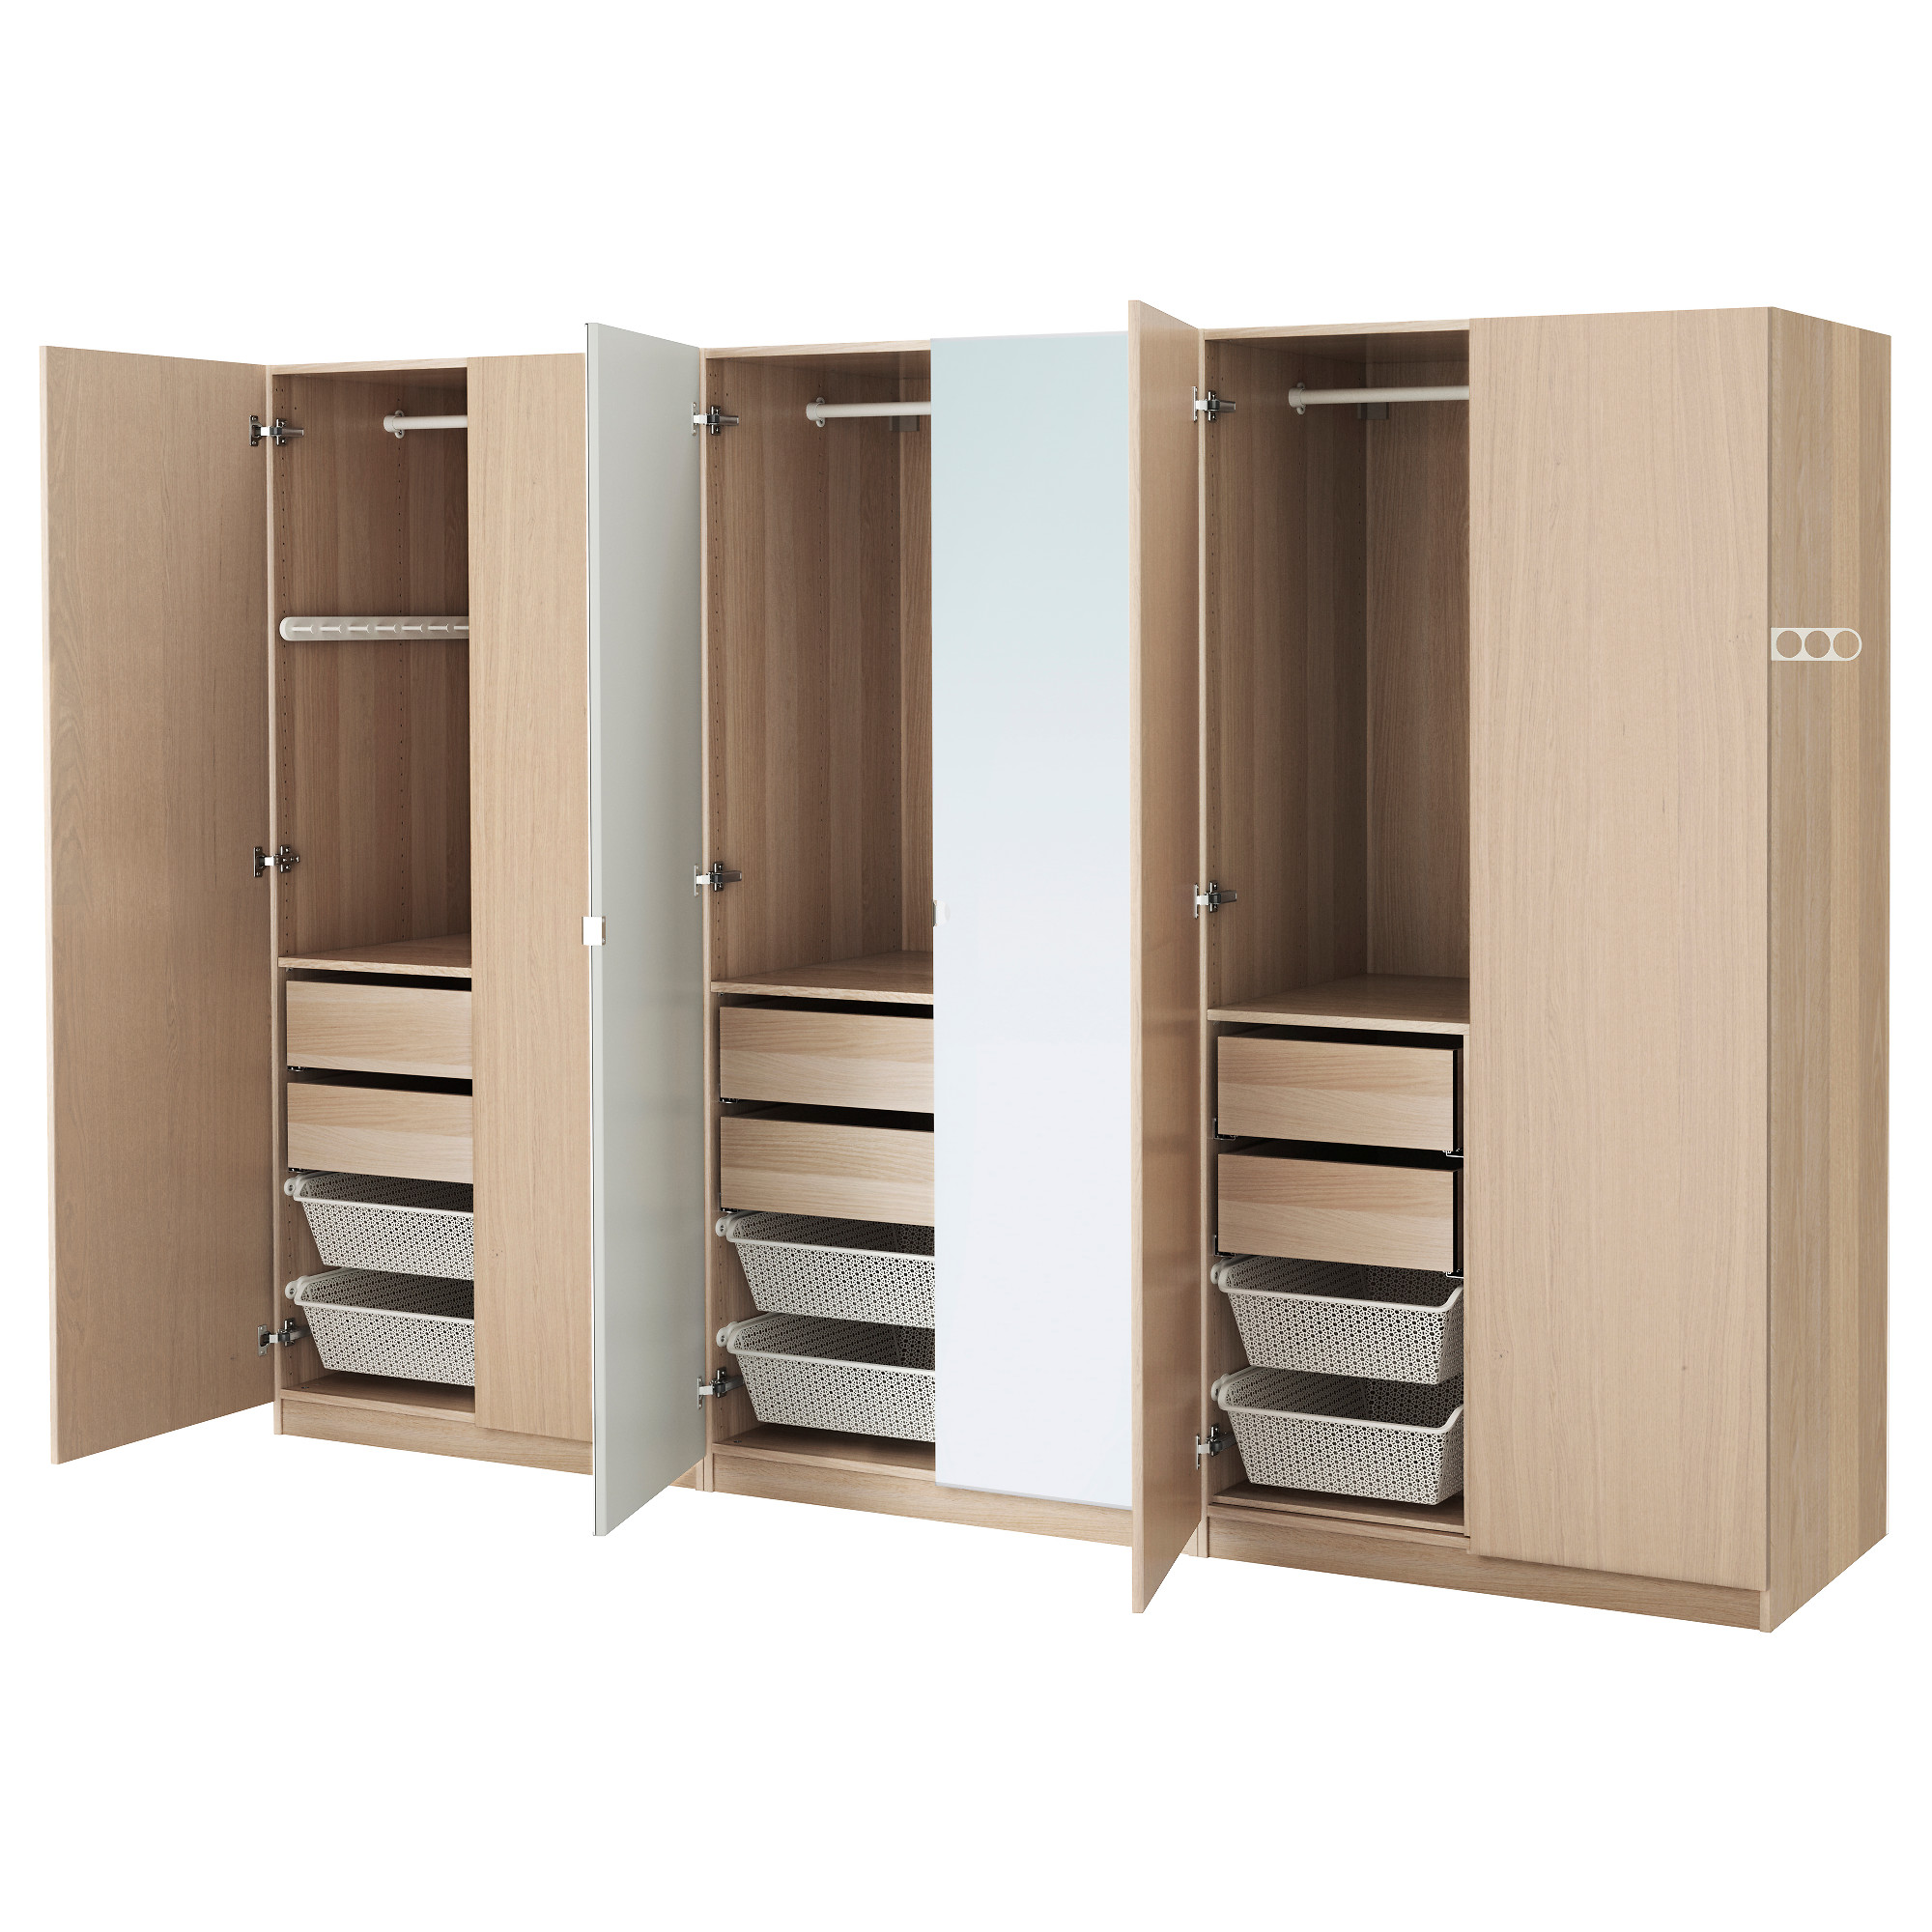 Dressing Ikea Trendy Wardrobes Dressing Ikea Armoire Dresser Closet